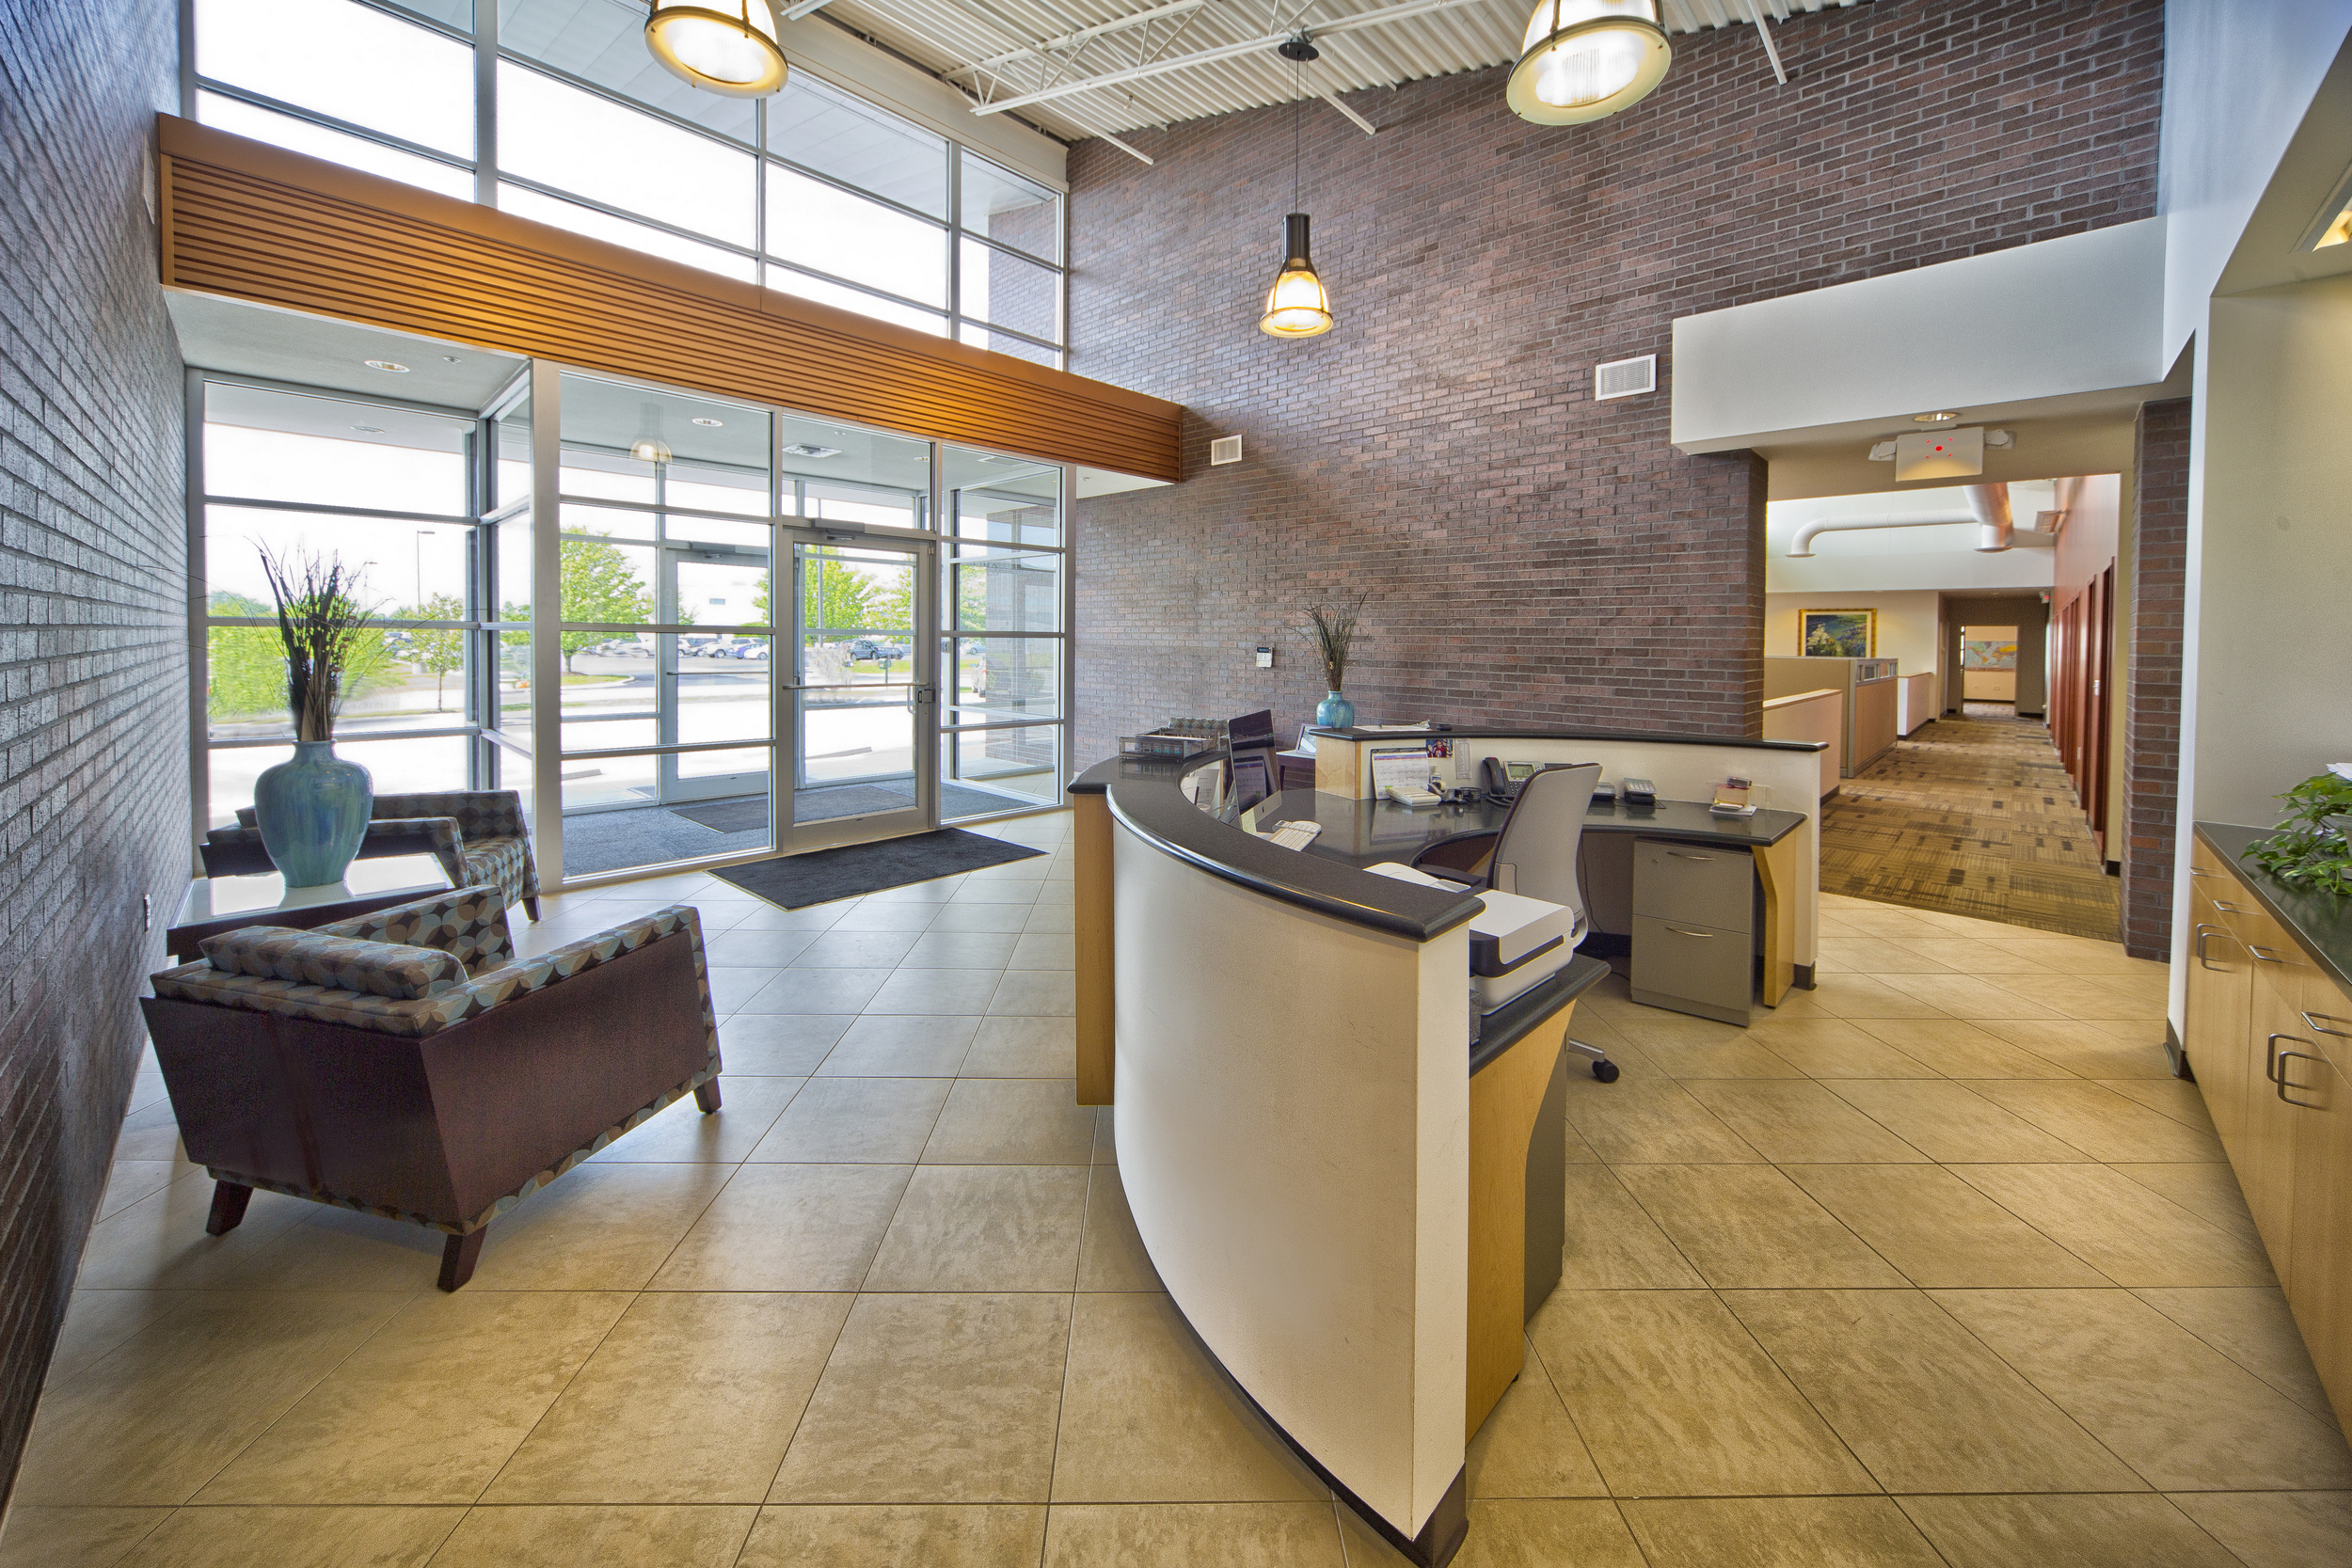 5-laboratory-healthcare-architecture-projects-indiana.jpg